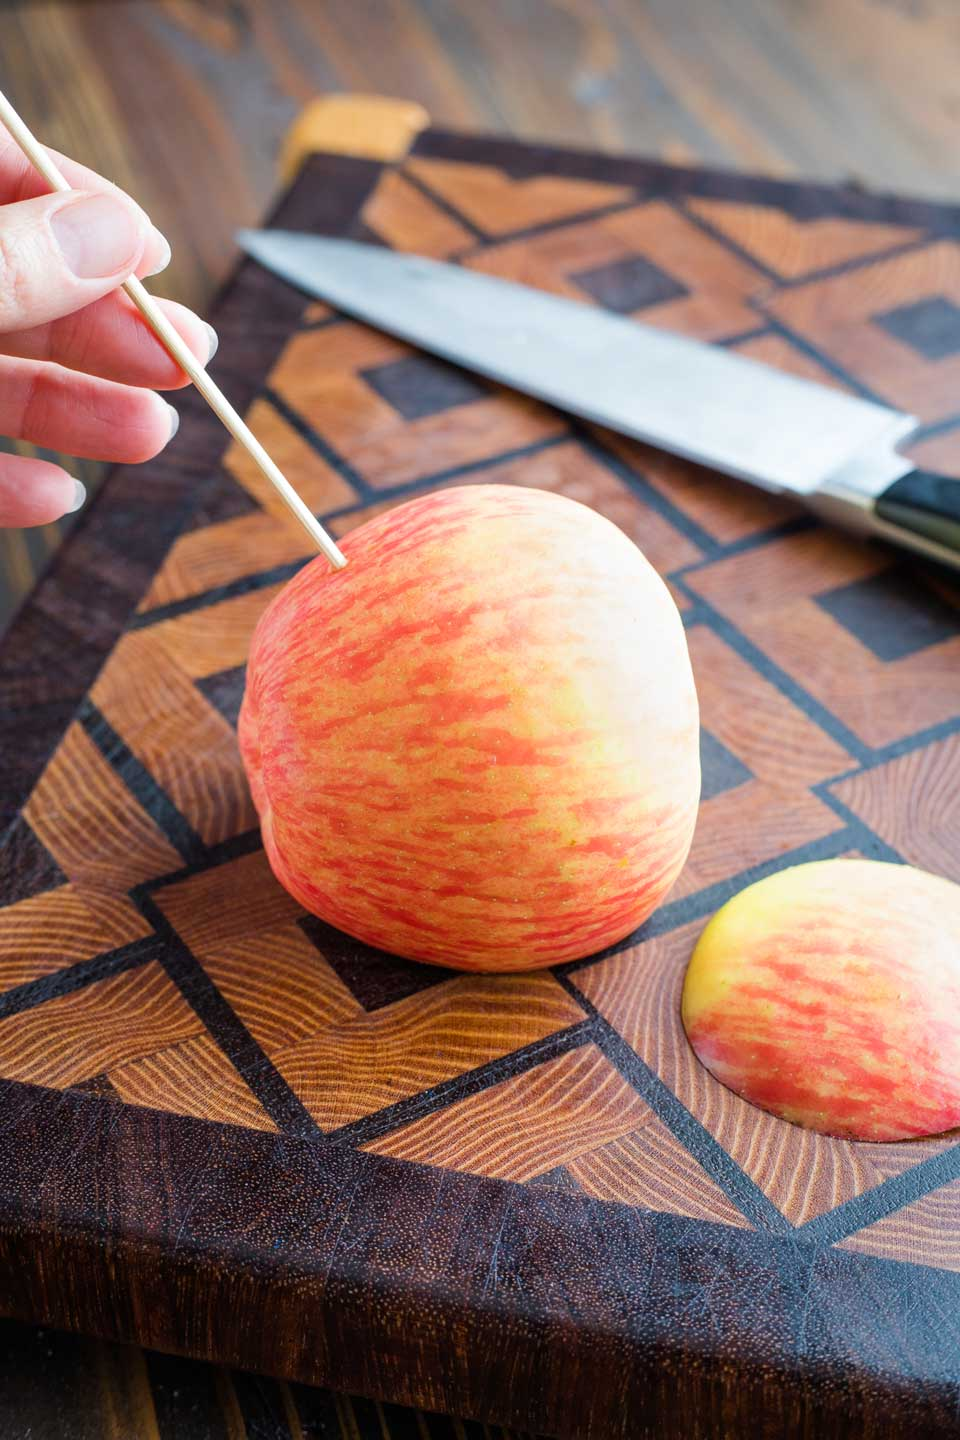 an apple on a cutting board with a slice off one side so it sits flat, and with a hand just starting to poke a skewer in to make a hole in the apple